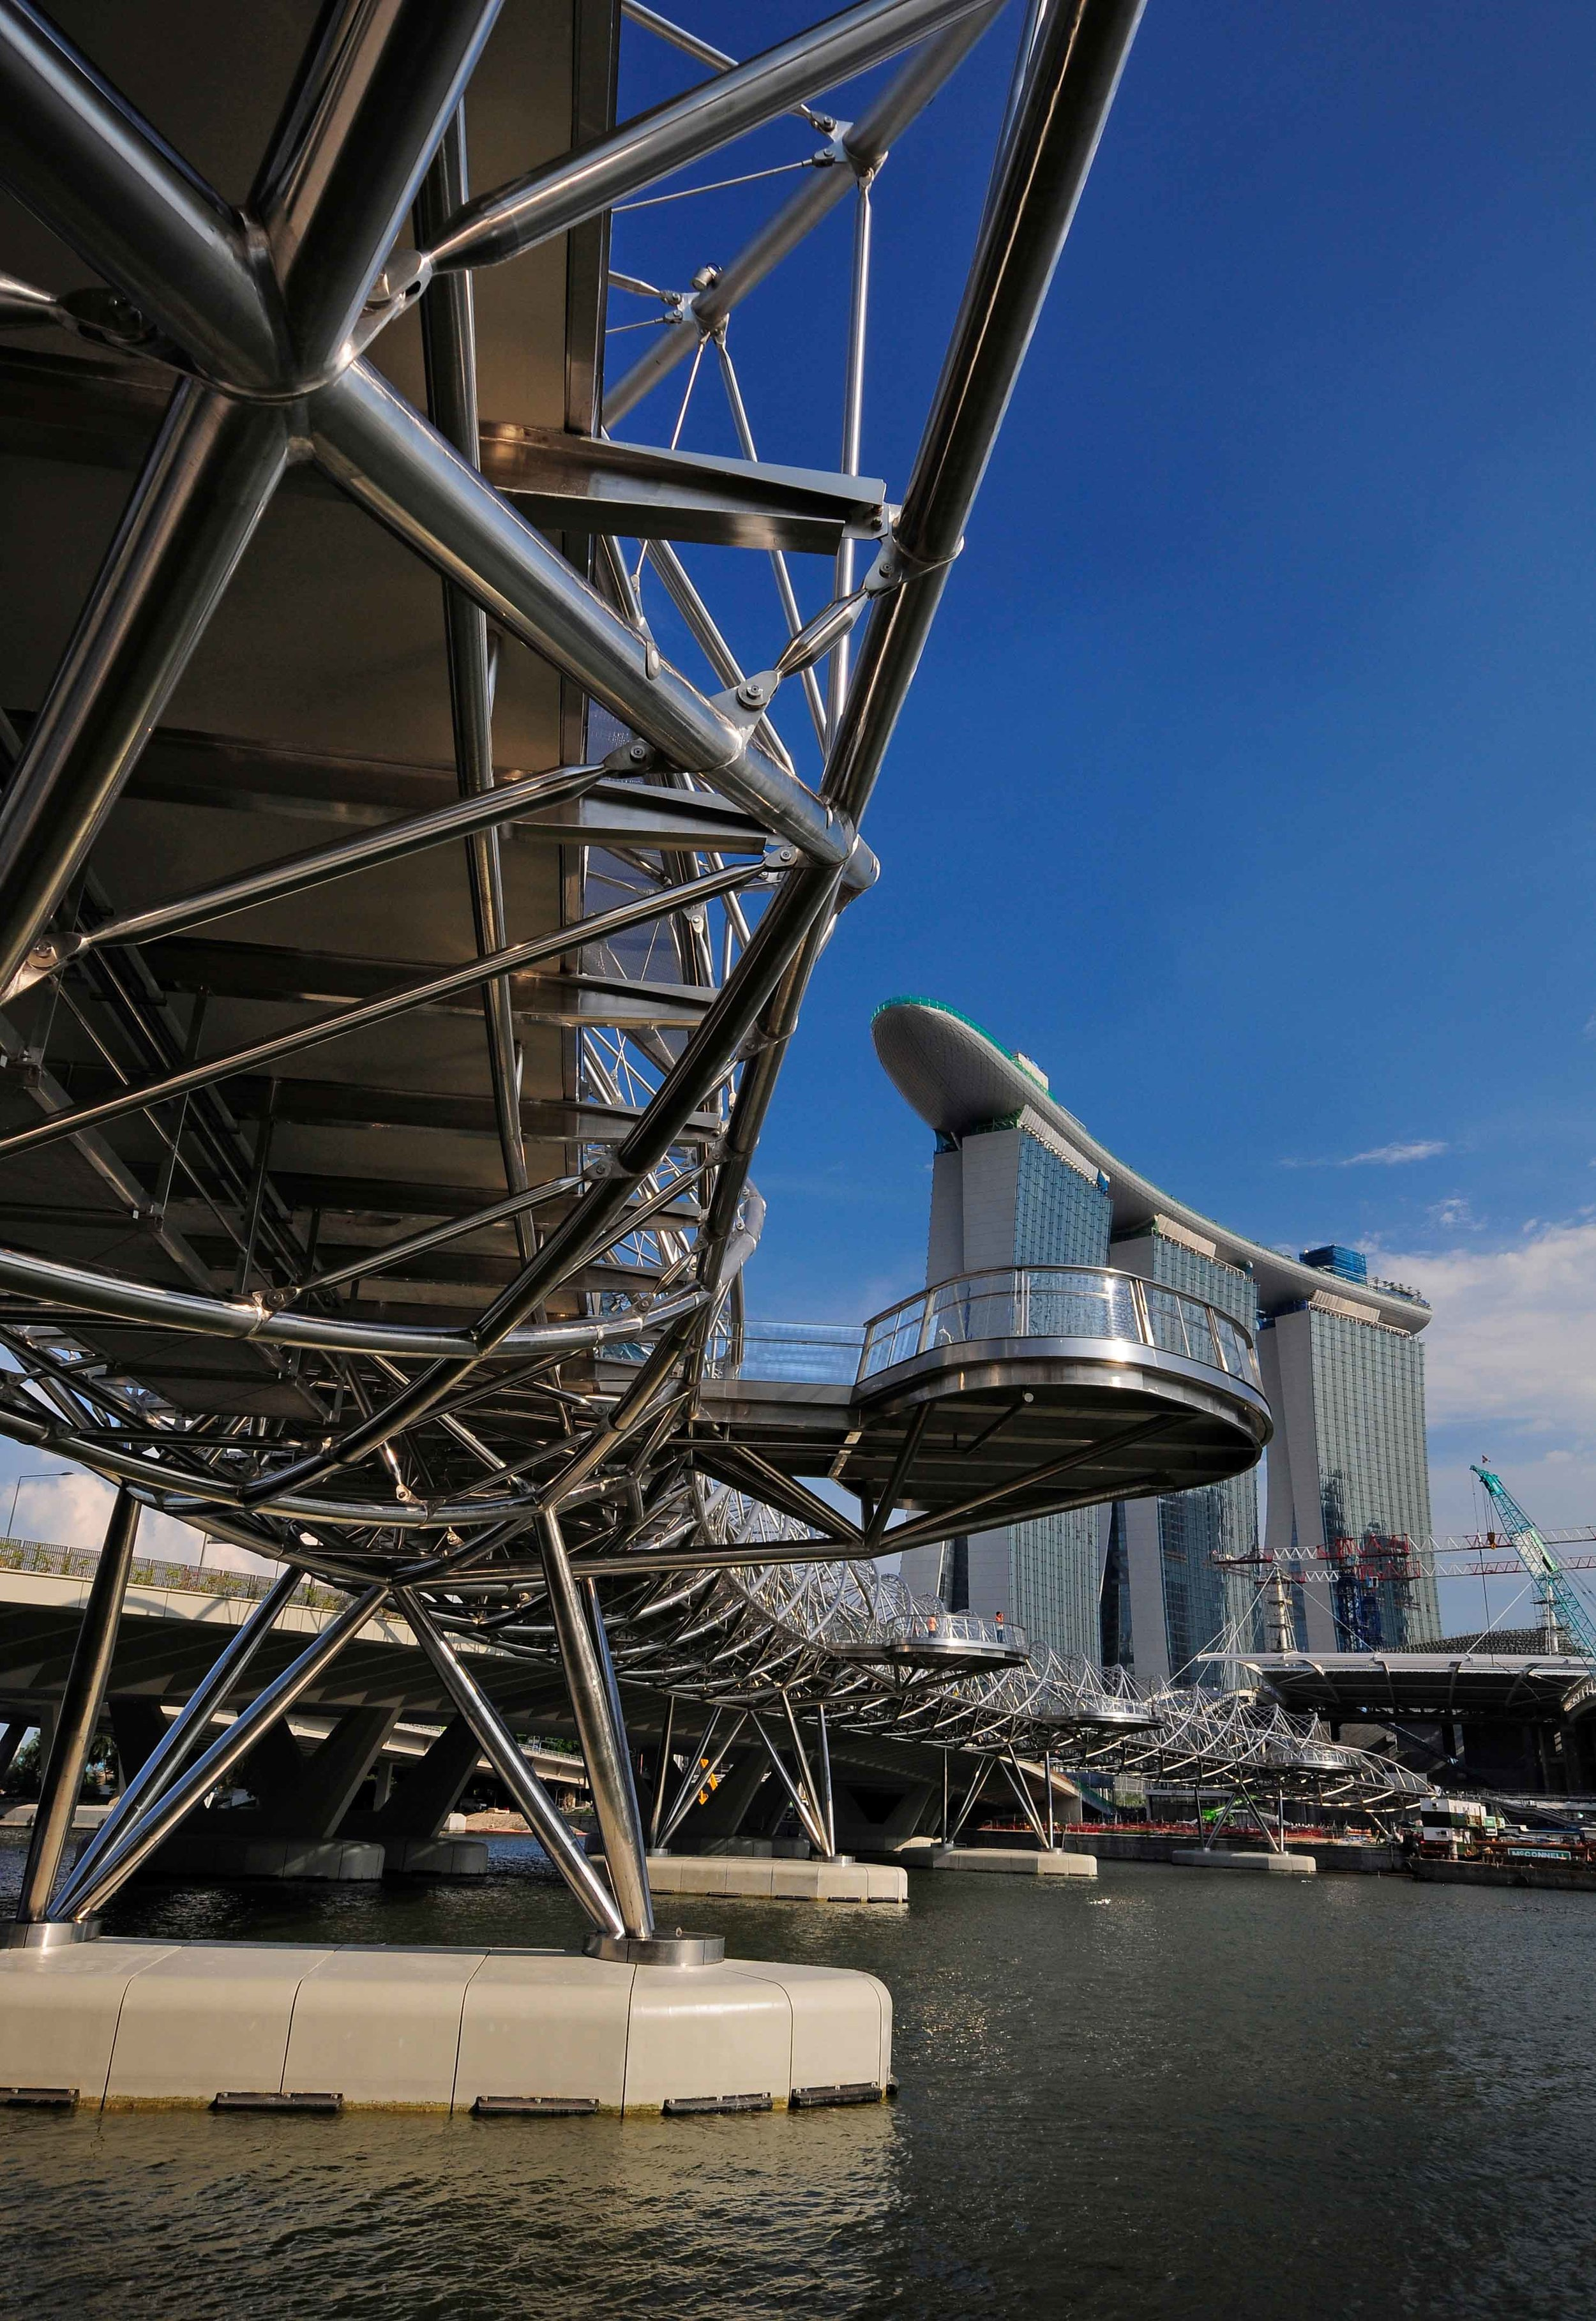 5: The Helix - Public infrastructure & the art of science